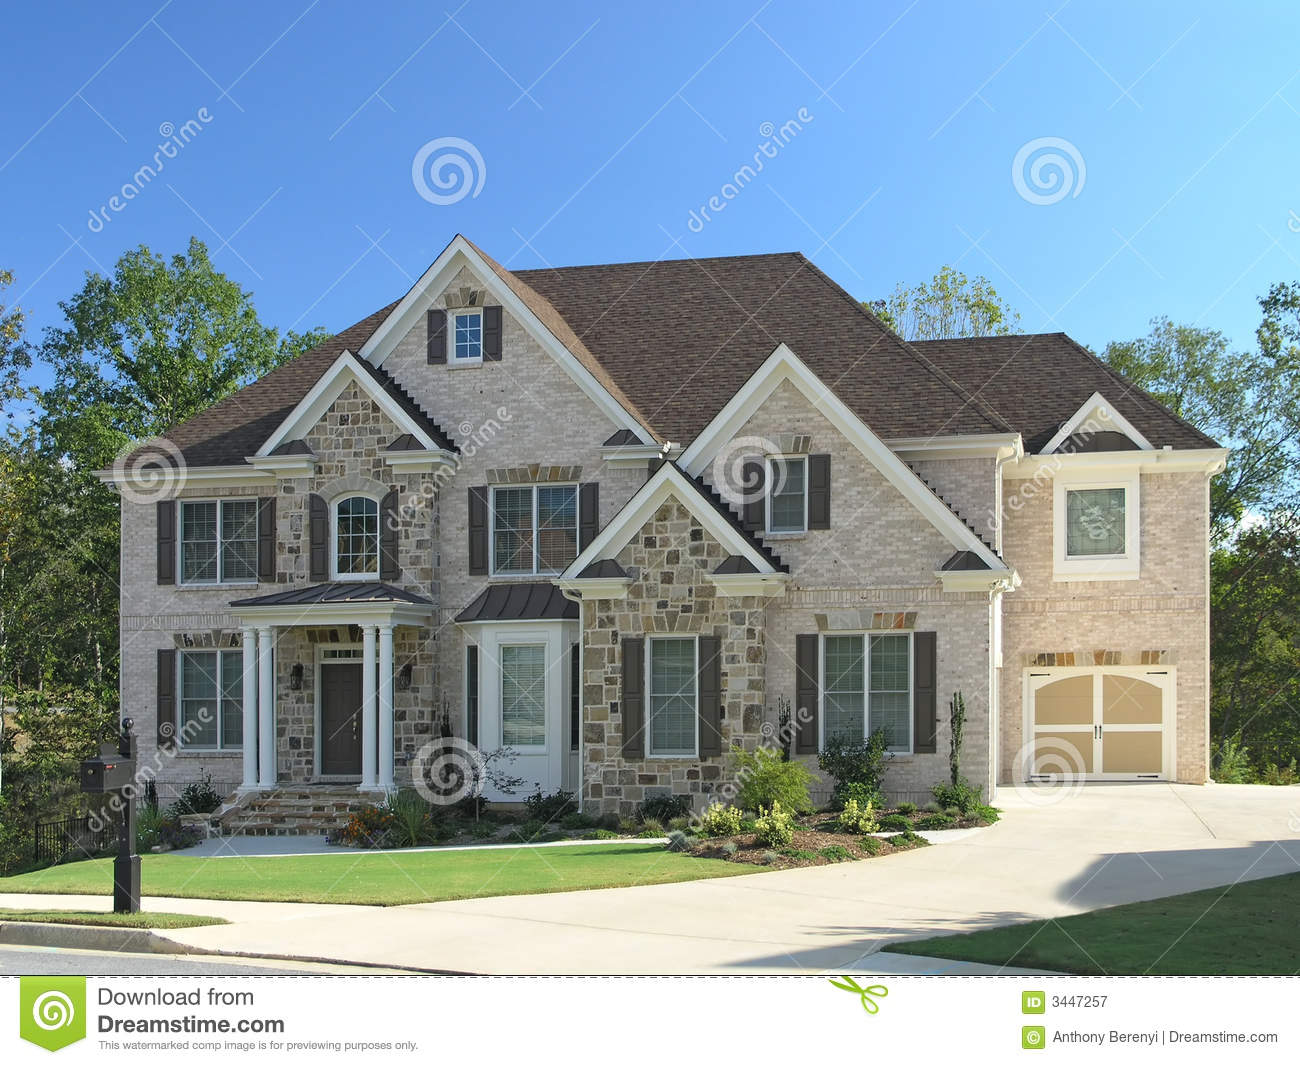 Luxury Home Exterior 52 Royalty Free Stock Photography